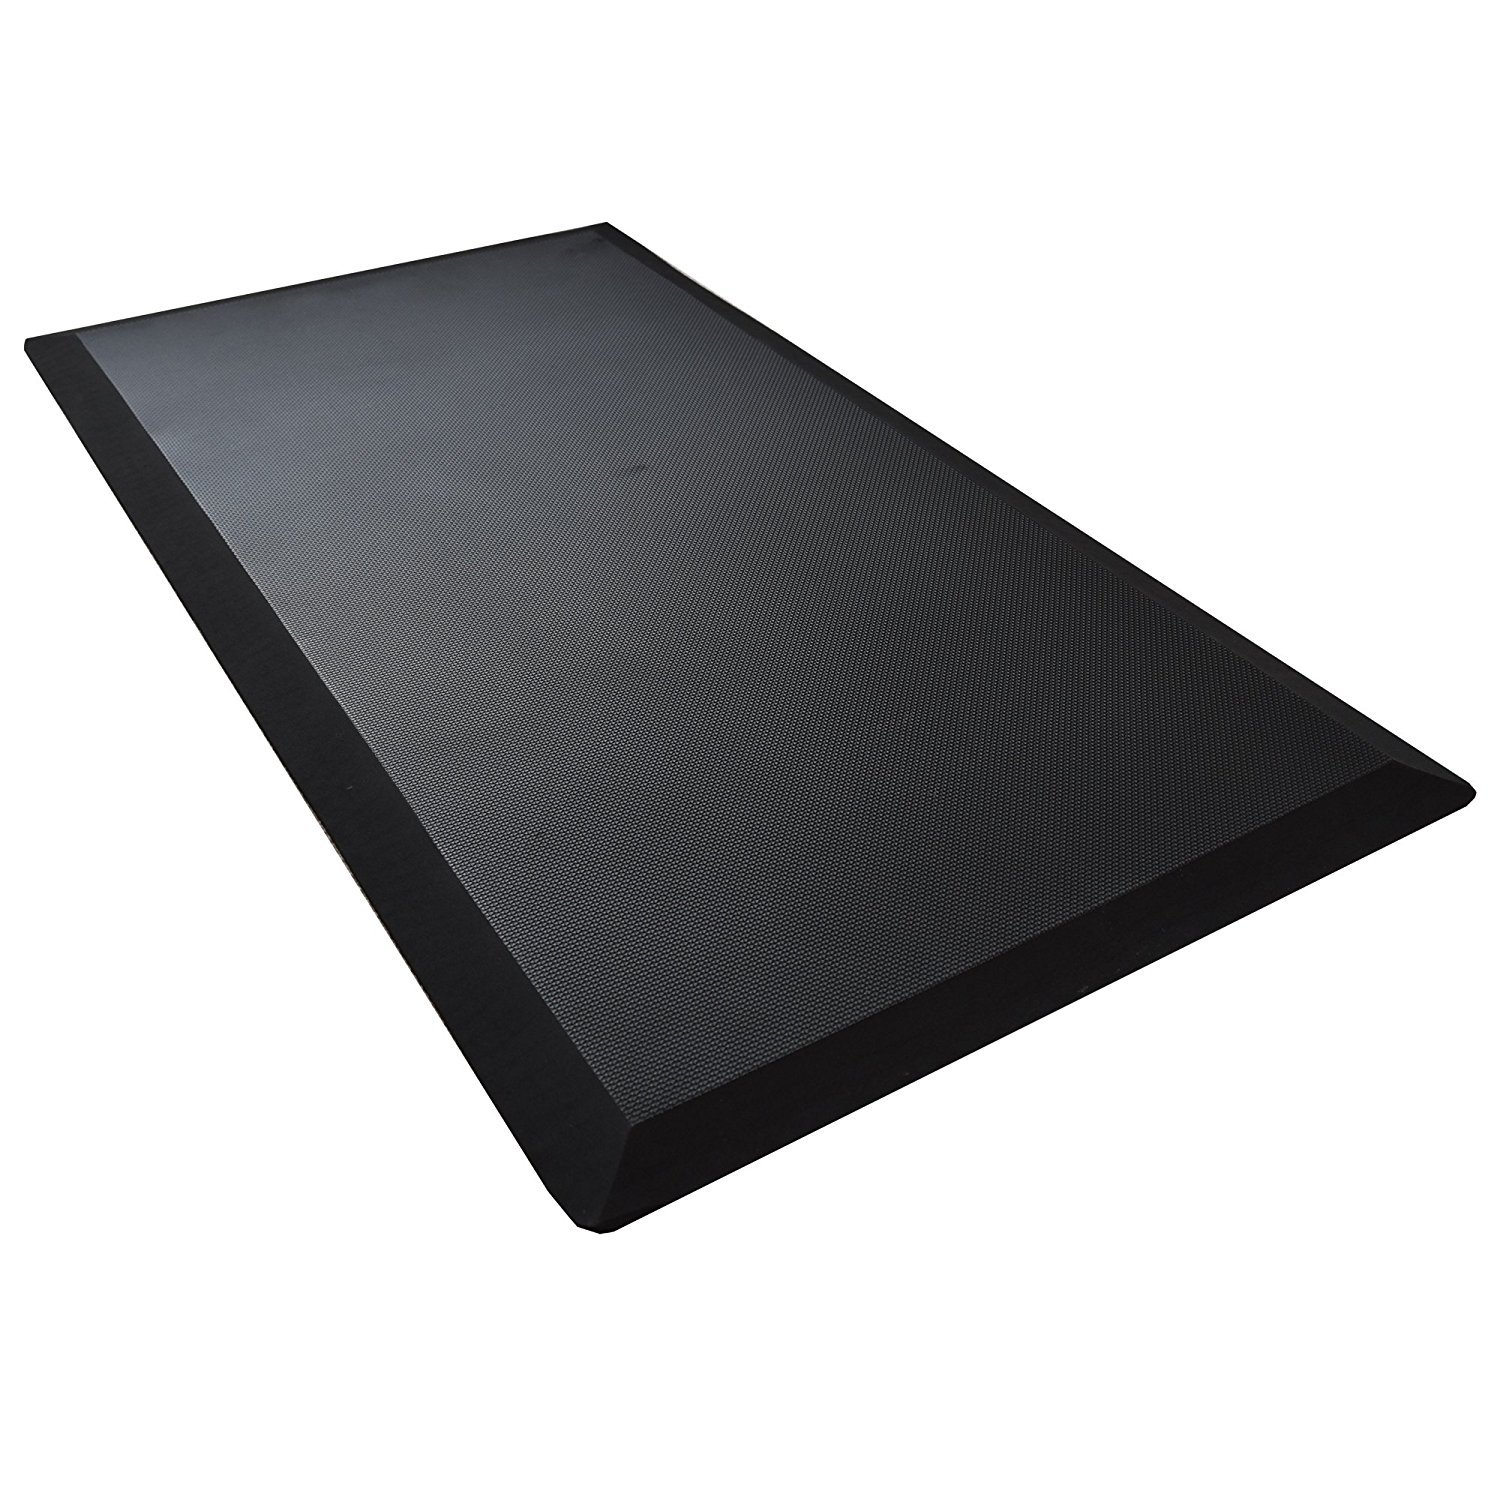 AirMat Anti-Fatigue Mat and Kitchen Floor Rug, 3/4